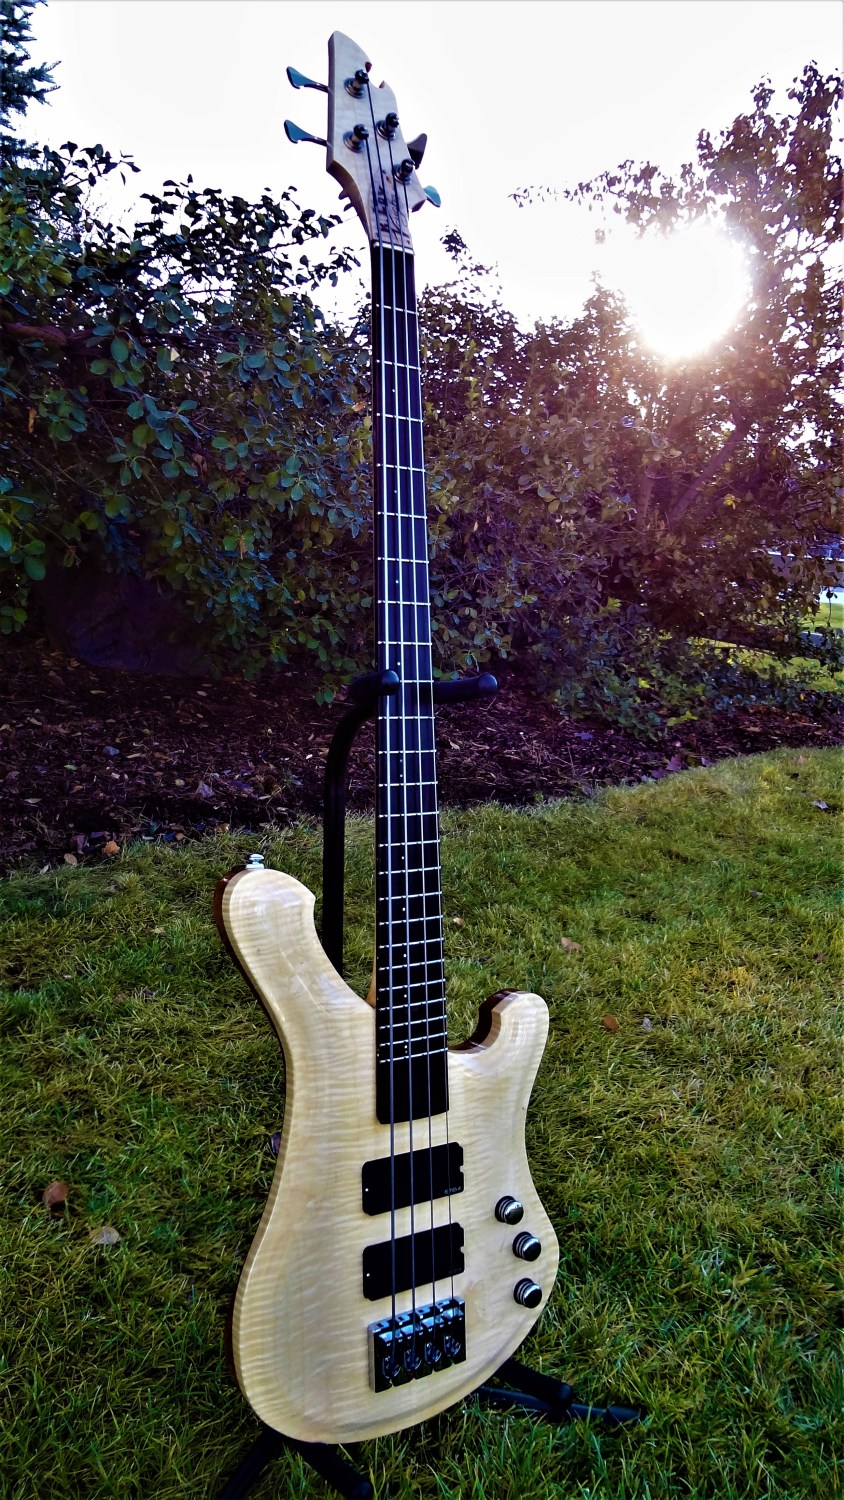 R. Low. Vaughn 34 Scale Four-String Bass